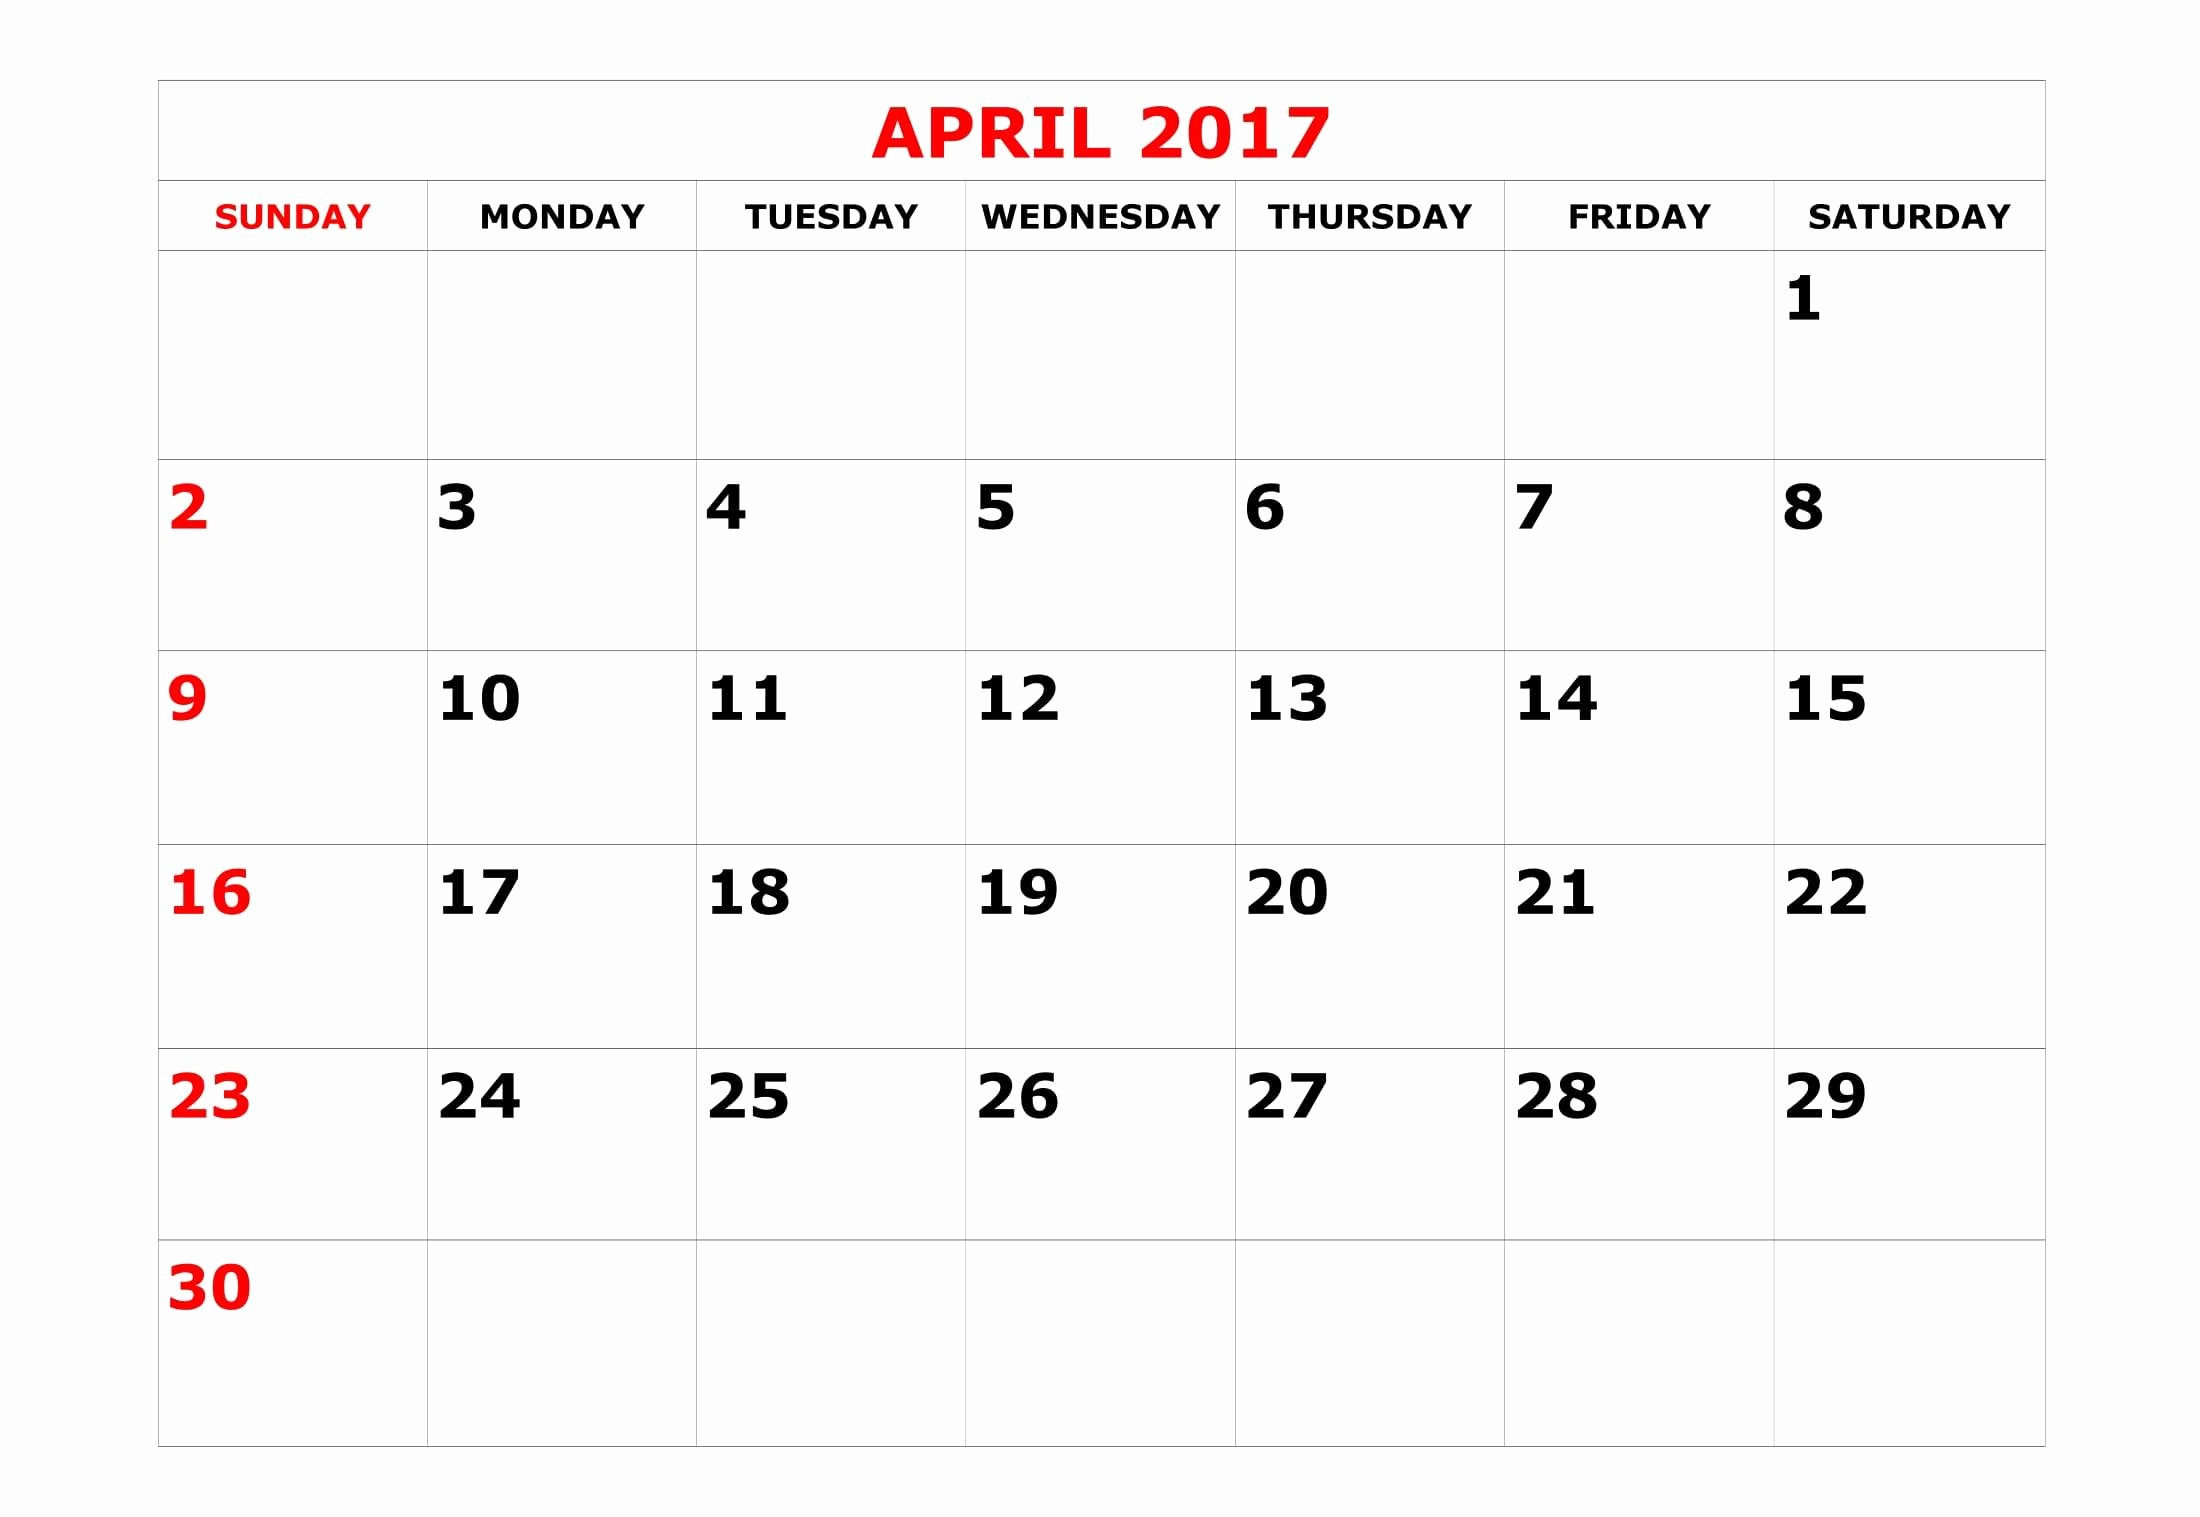 Calendar 2017 Monday to Sunday Elegant April 2017 Calendar Monday to Sunday Calendar and